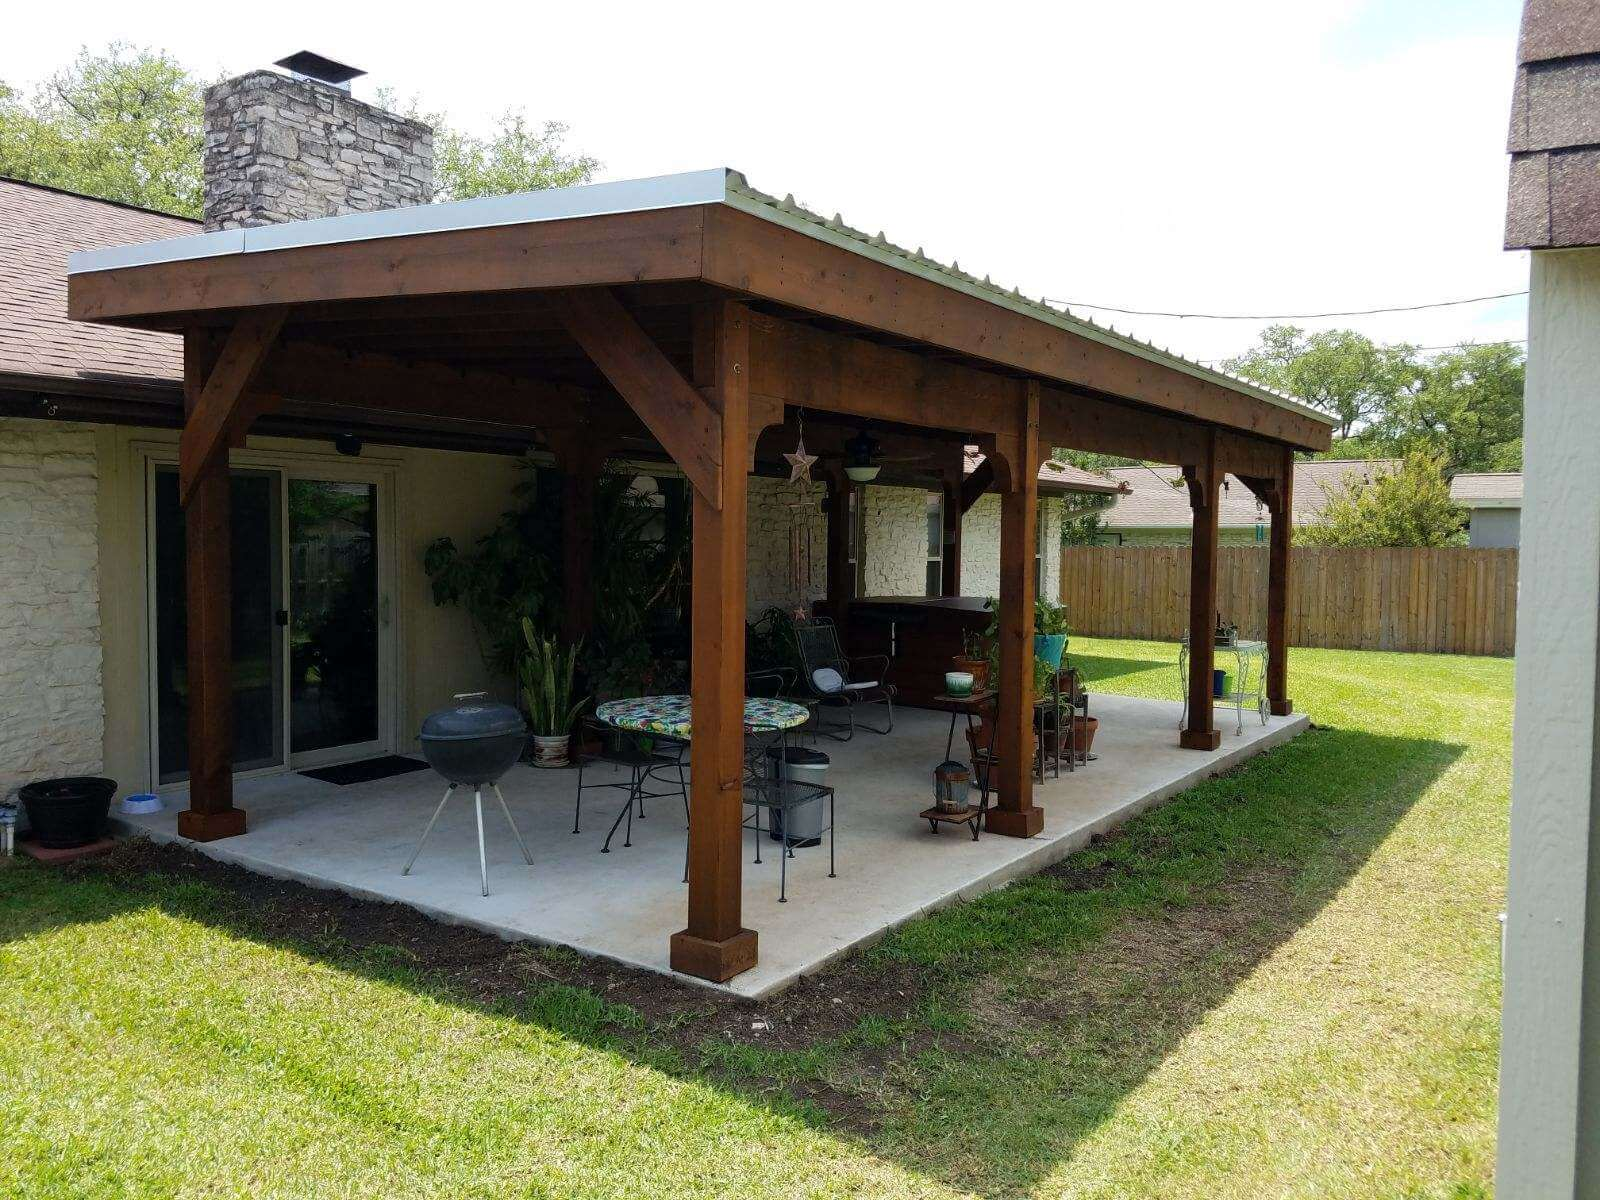 Outdoor kitchen on patio with pergola